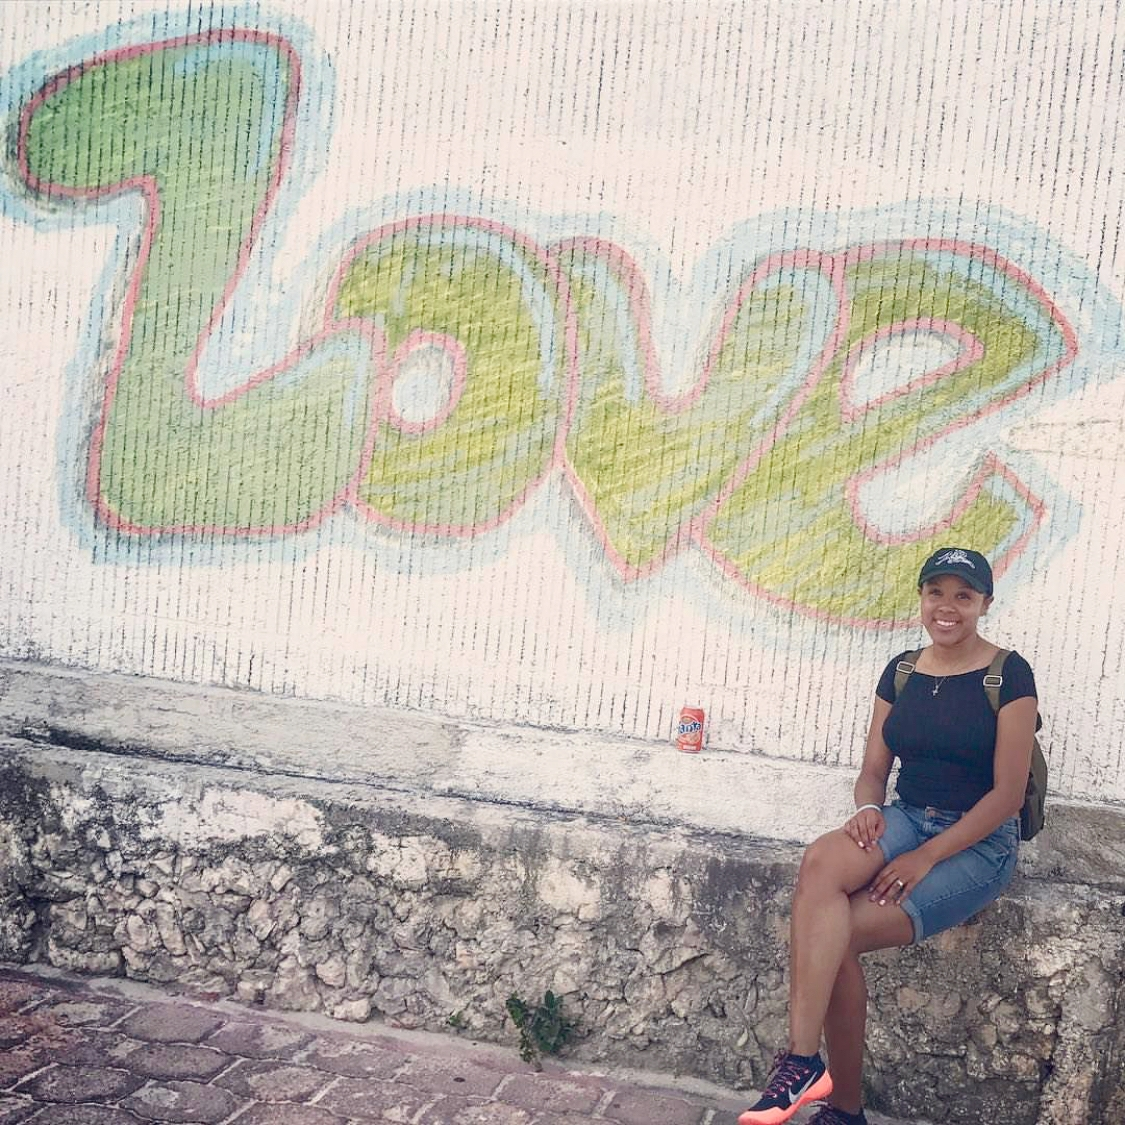 By day 3 I was totally SUNBURNED. Around in the town of Isla Mujeres is very cultured and I enjoyed seeing artwork, graffiti, and many more Mexican aspects of the island.